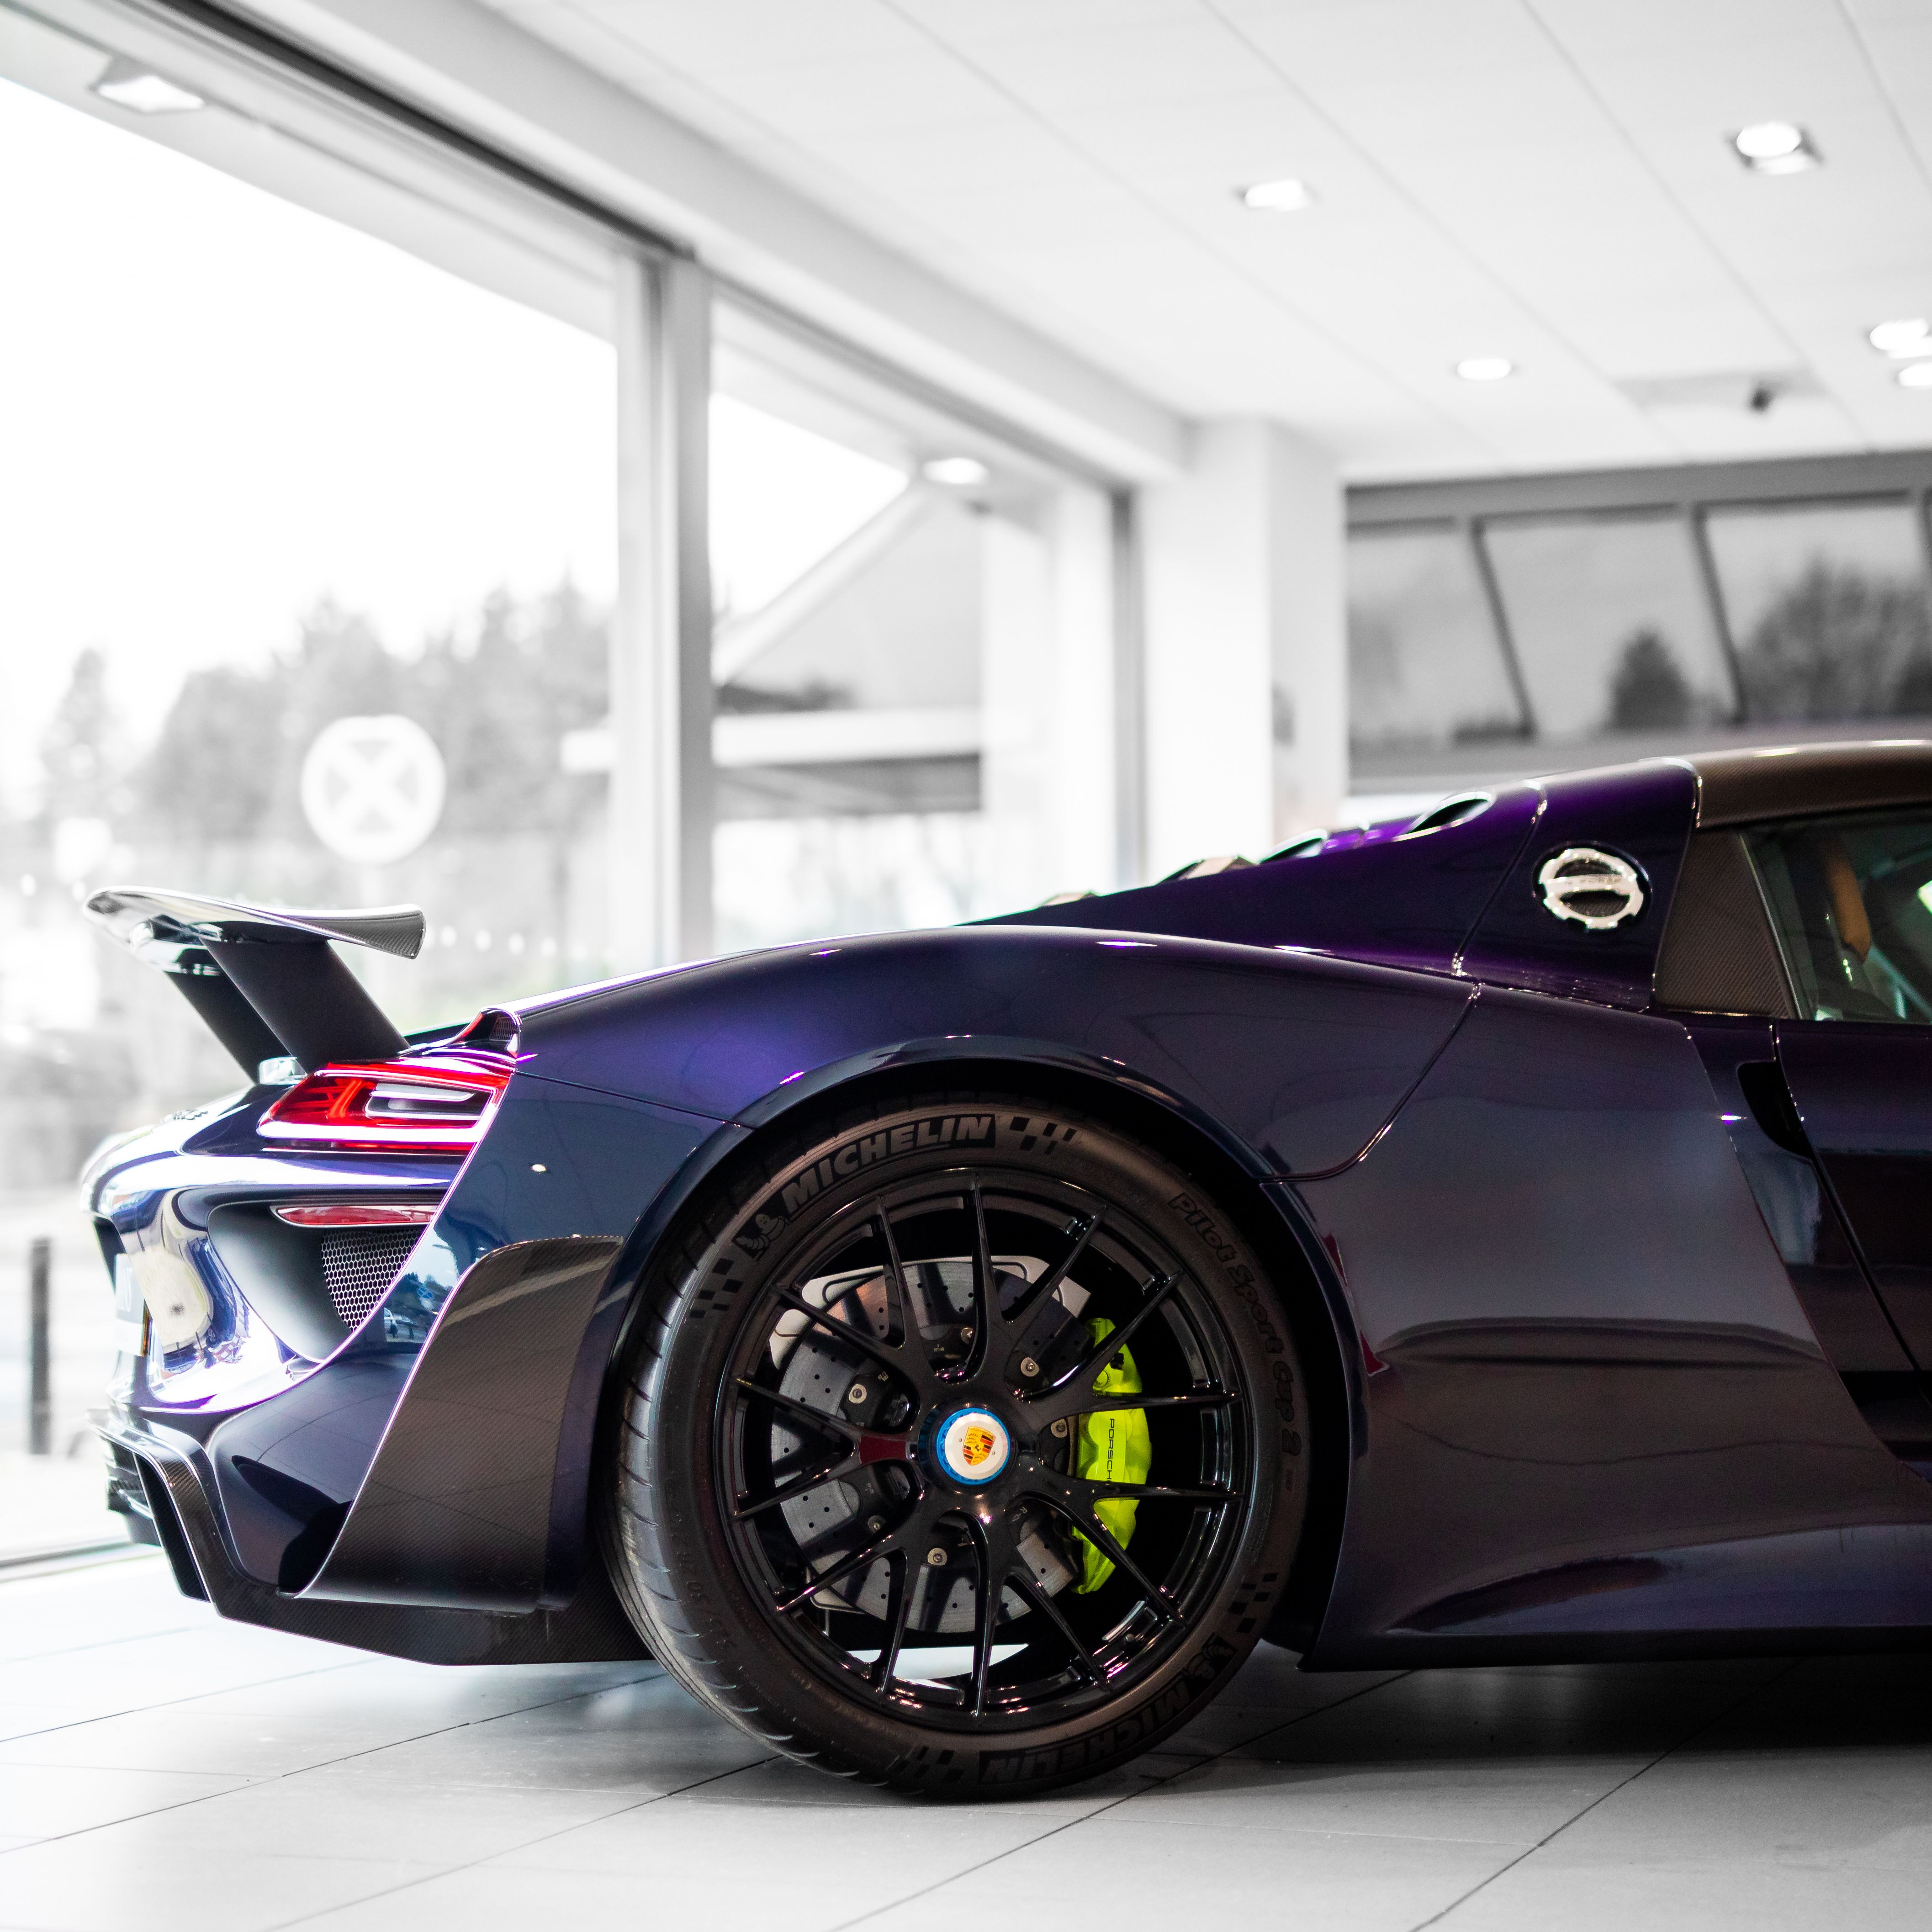 Midnight Blue 918 #Porsche #918 #Spyder #Hypercars #Cars